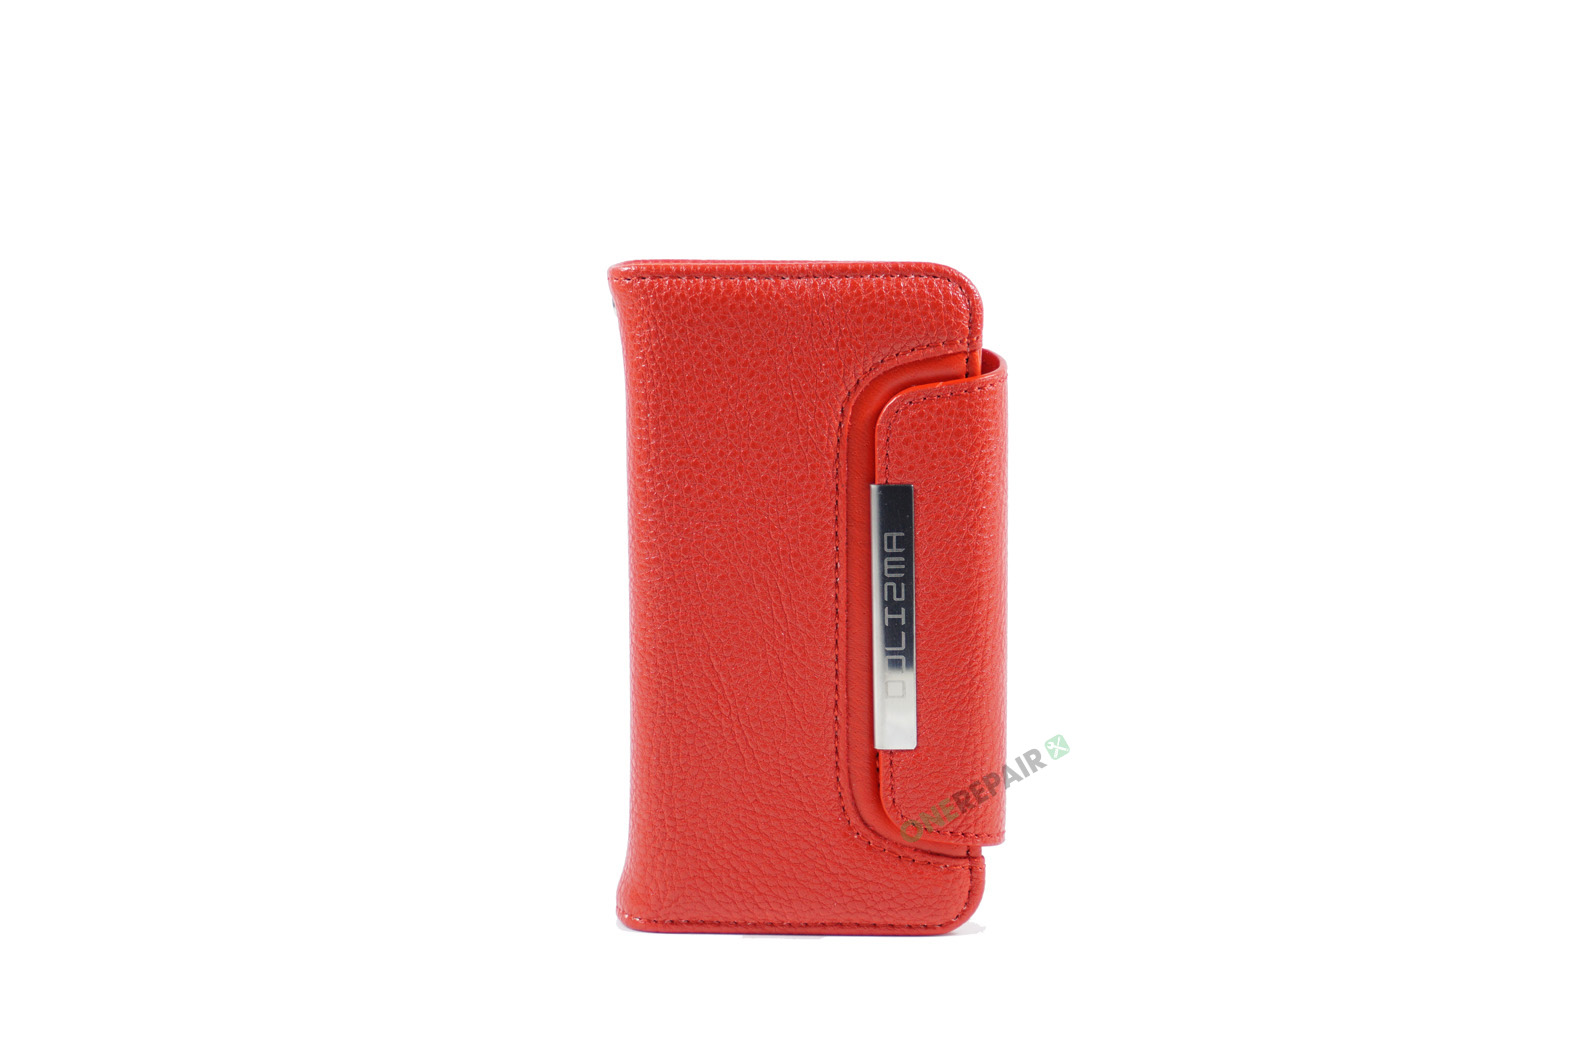 Billig iPhone 5 5S SE Flipcover Magnetcover Magnet kan tages ud Cover Bagcover Gummicover A1453 A1457 A1518 A1528 A1530 A1533 A1428 A1429 A1442 A1723 A1662 A1724 Roed